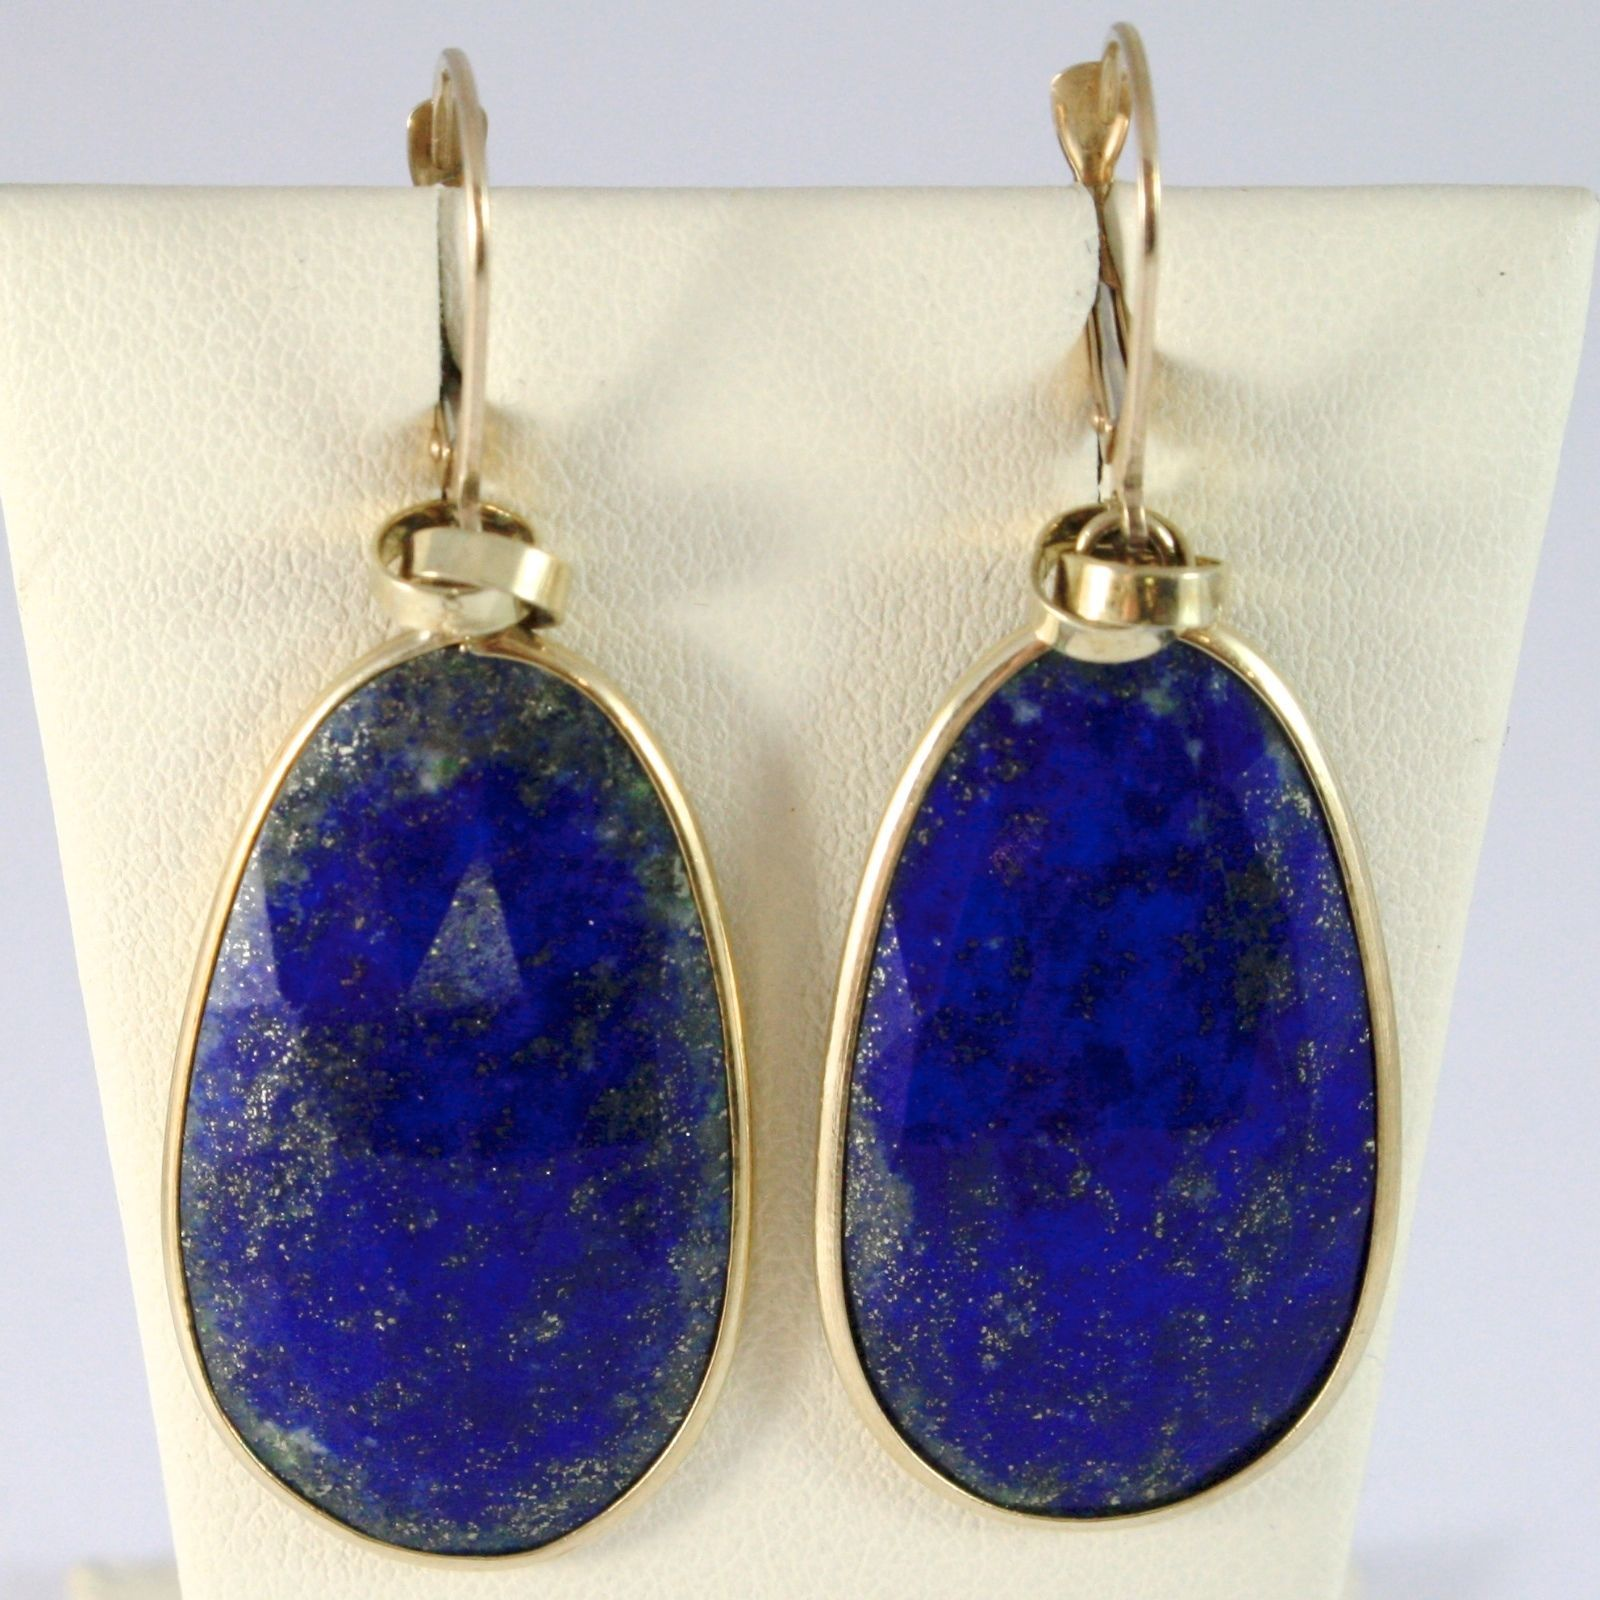 9K YELLOW GOLD PENDANT EARRINGS, DROP BLUE FACETED LAPIS LAZULI, 2 INCHES